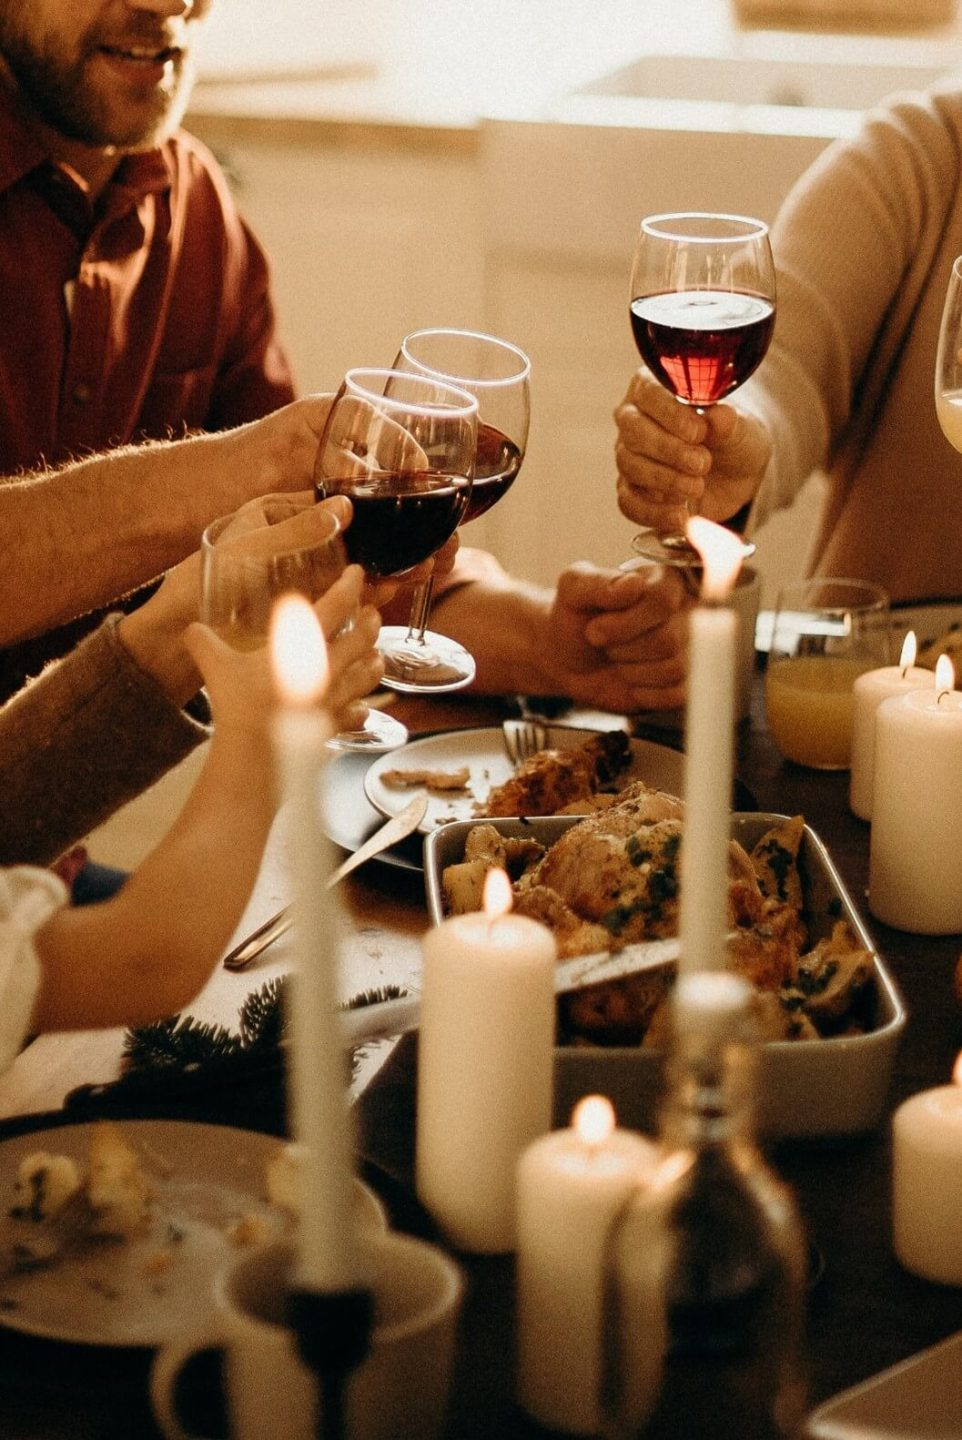 A photo of people sat at a table holding glasses of red wine